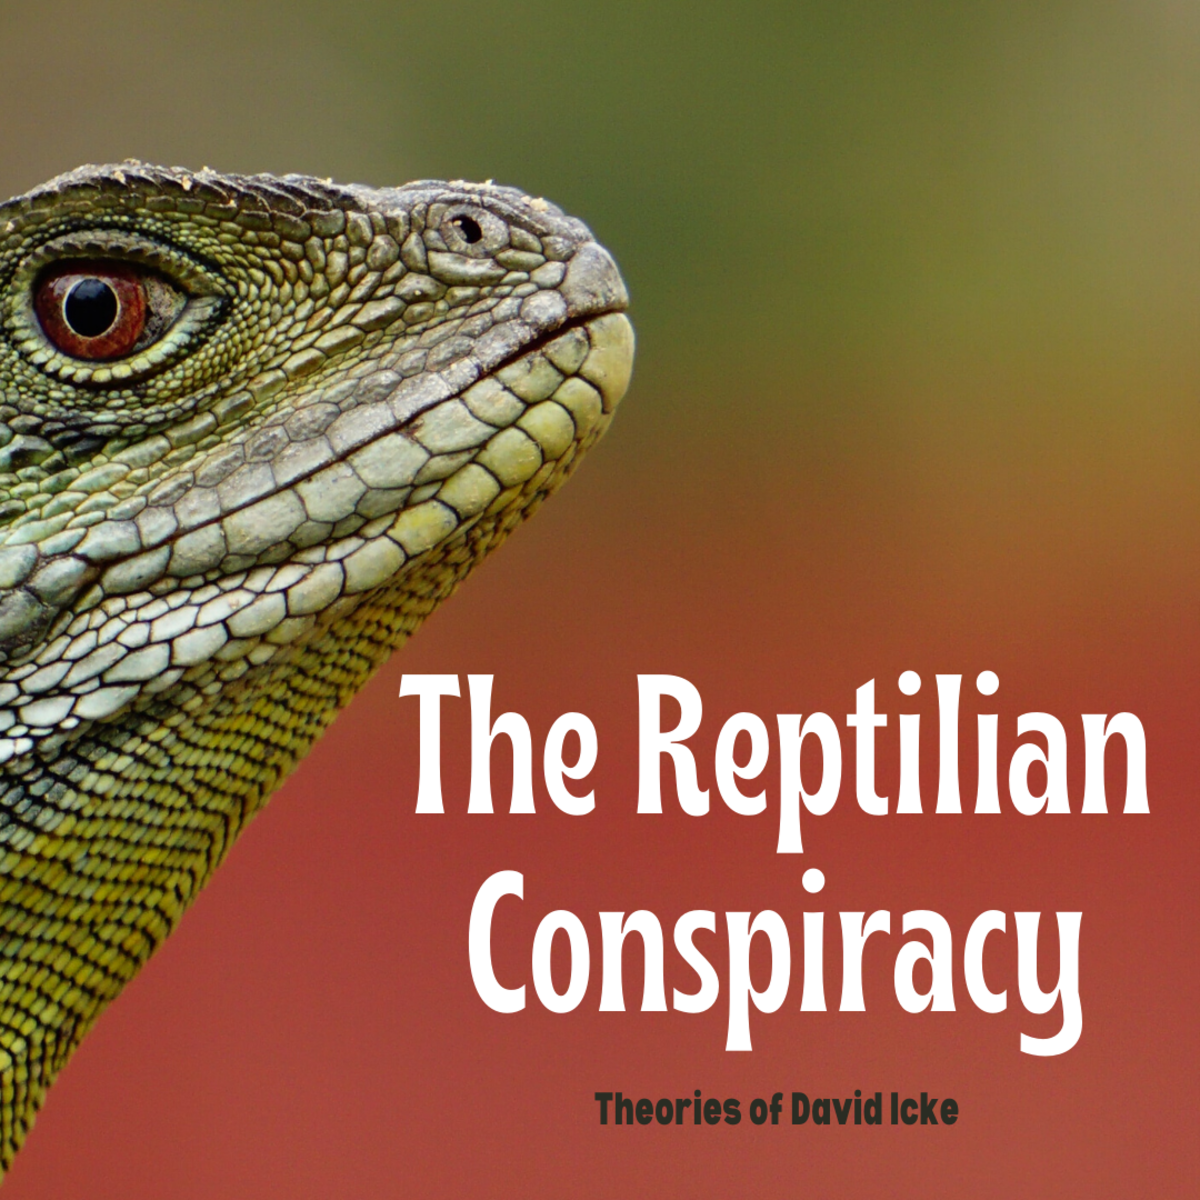 David Icke and the Reptilian Conspiracy